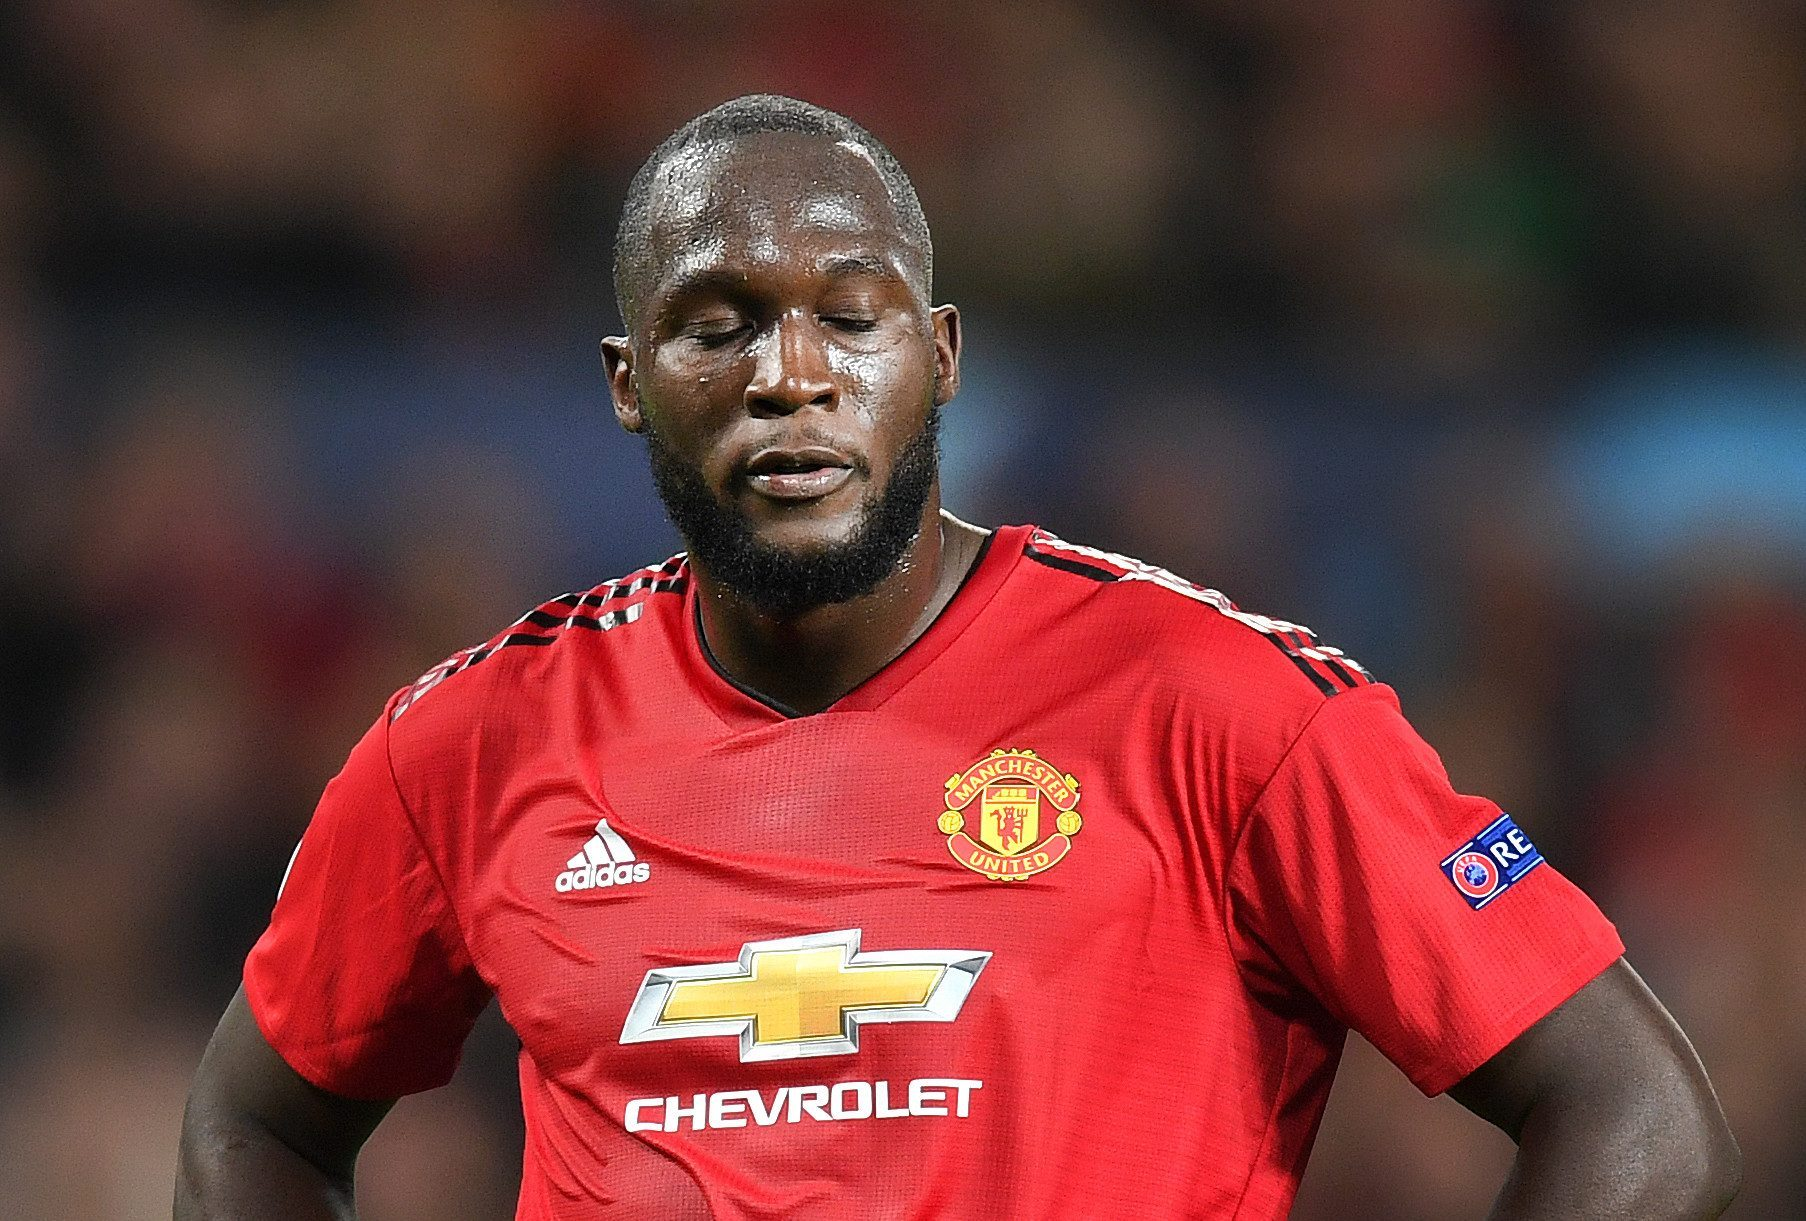 Romelu Lukaku will leave Old Trafford this summer, according to reports